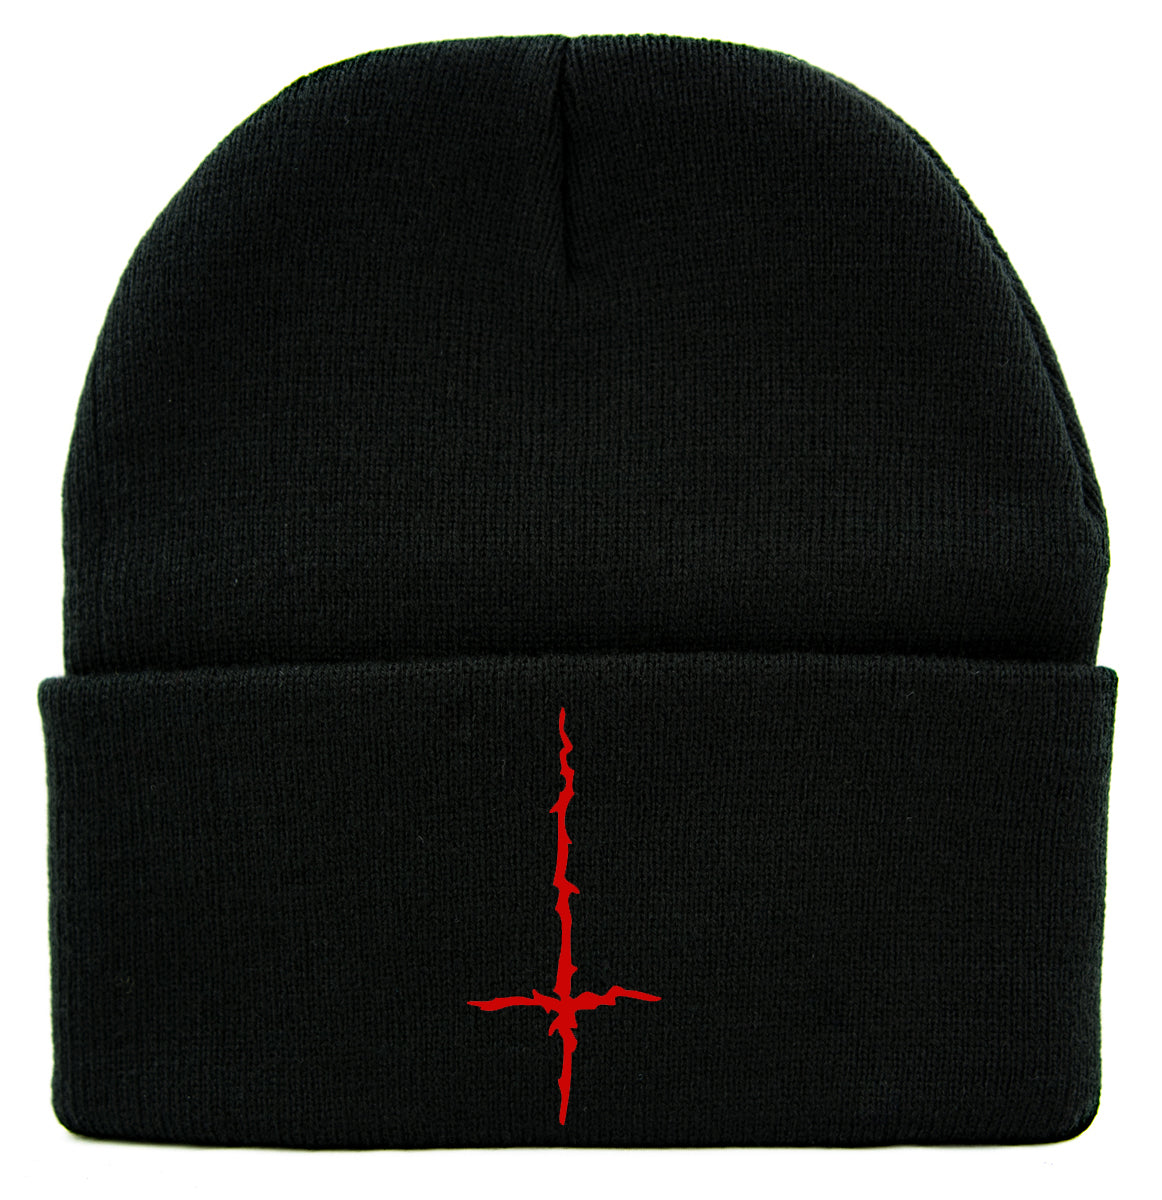 Red Black Metal Style Inverted Cross Cuff Beanie Knit Cap Unholy Evil Alternative Clothing